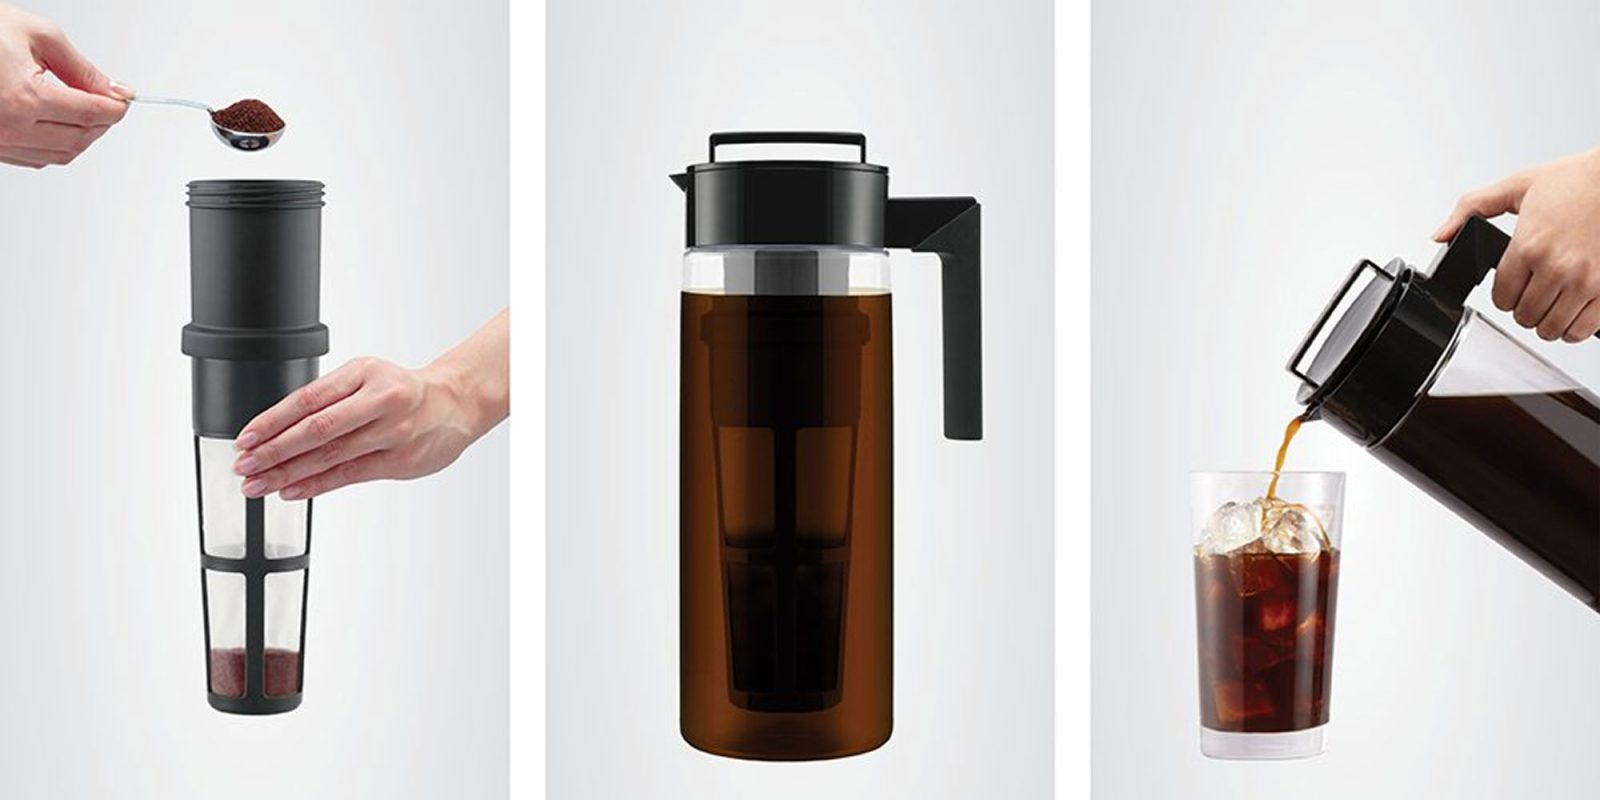 This Takeya Iced Coffee Maker carries 1-quart of cold brew for $16 (20% off)